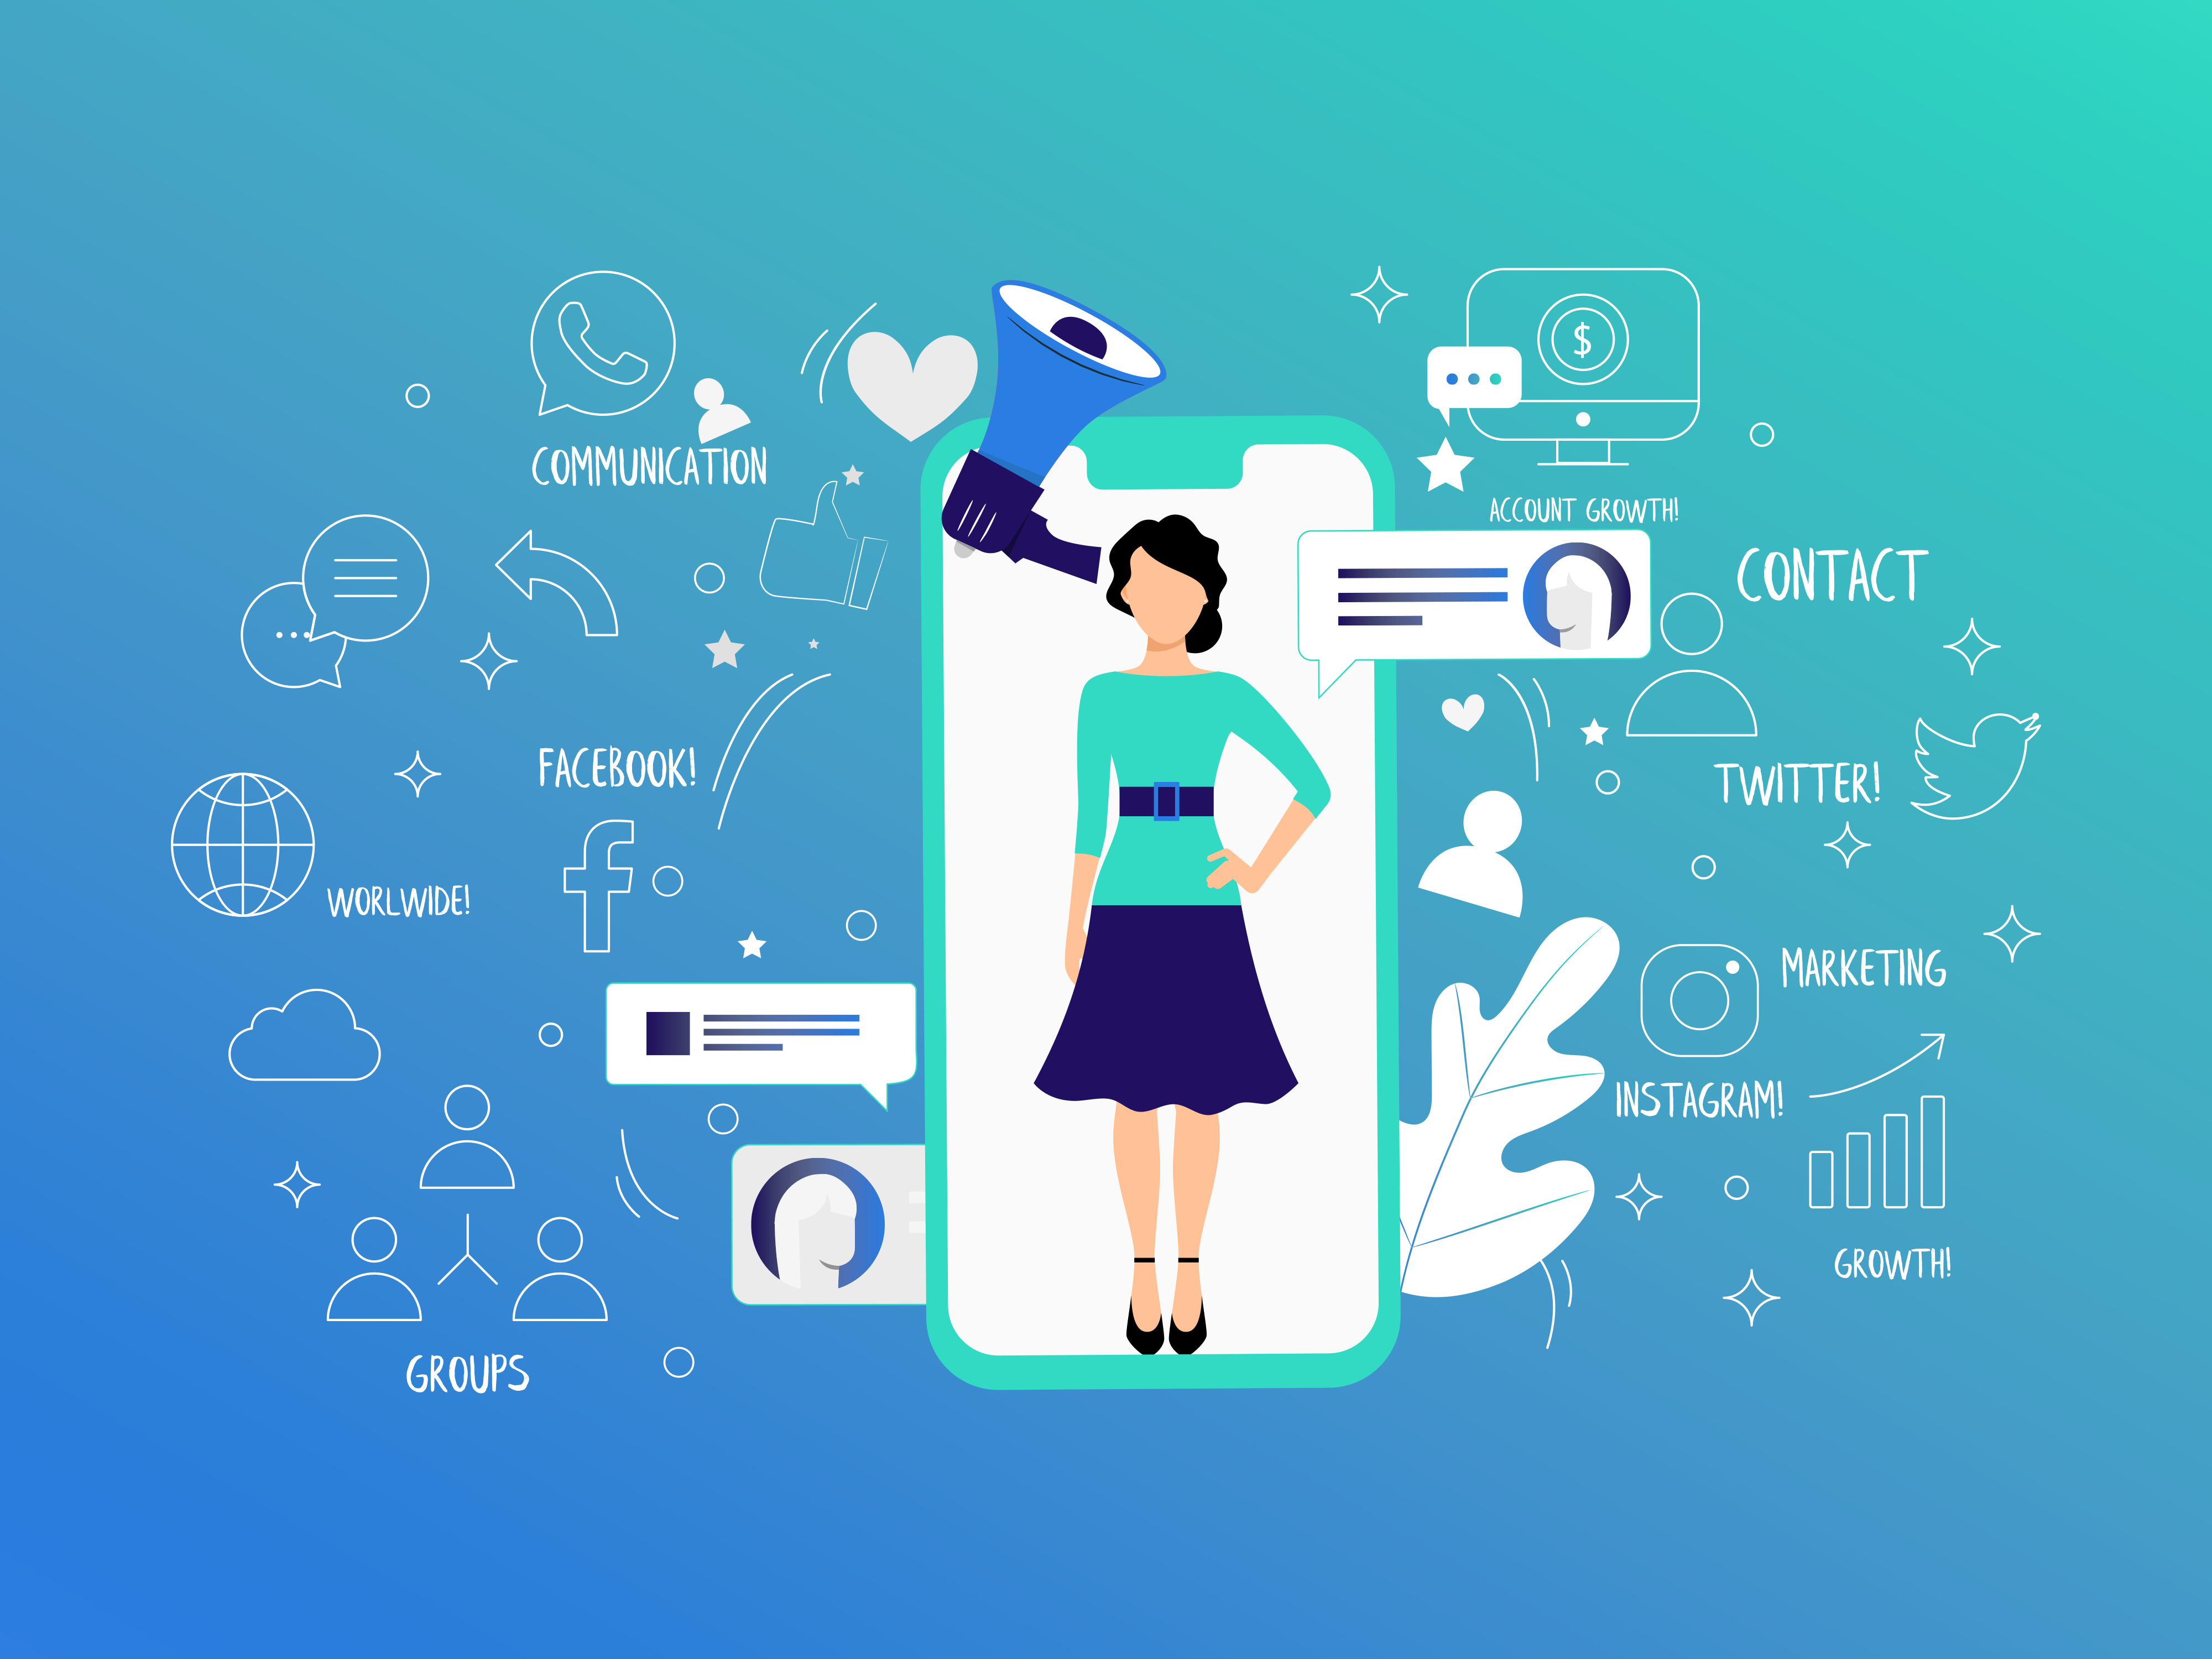 A Brief About Best influencer marketing software to grow your business